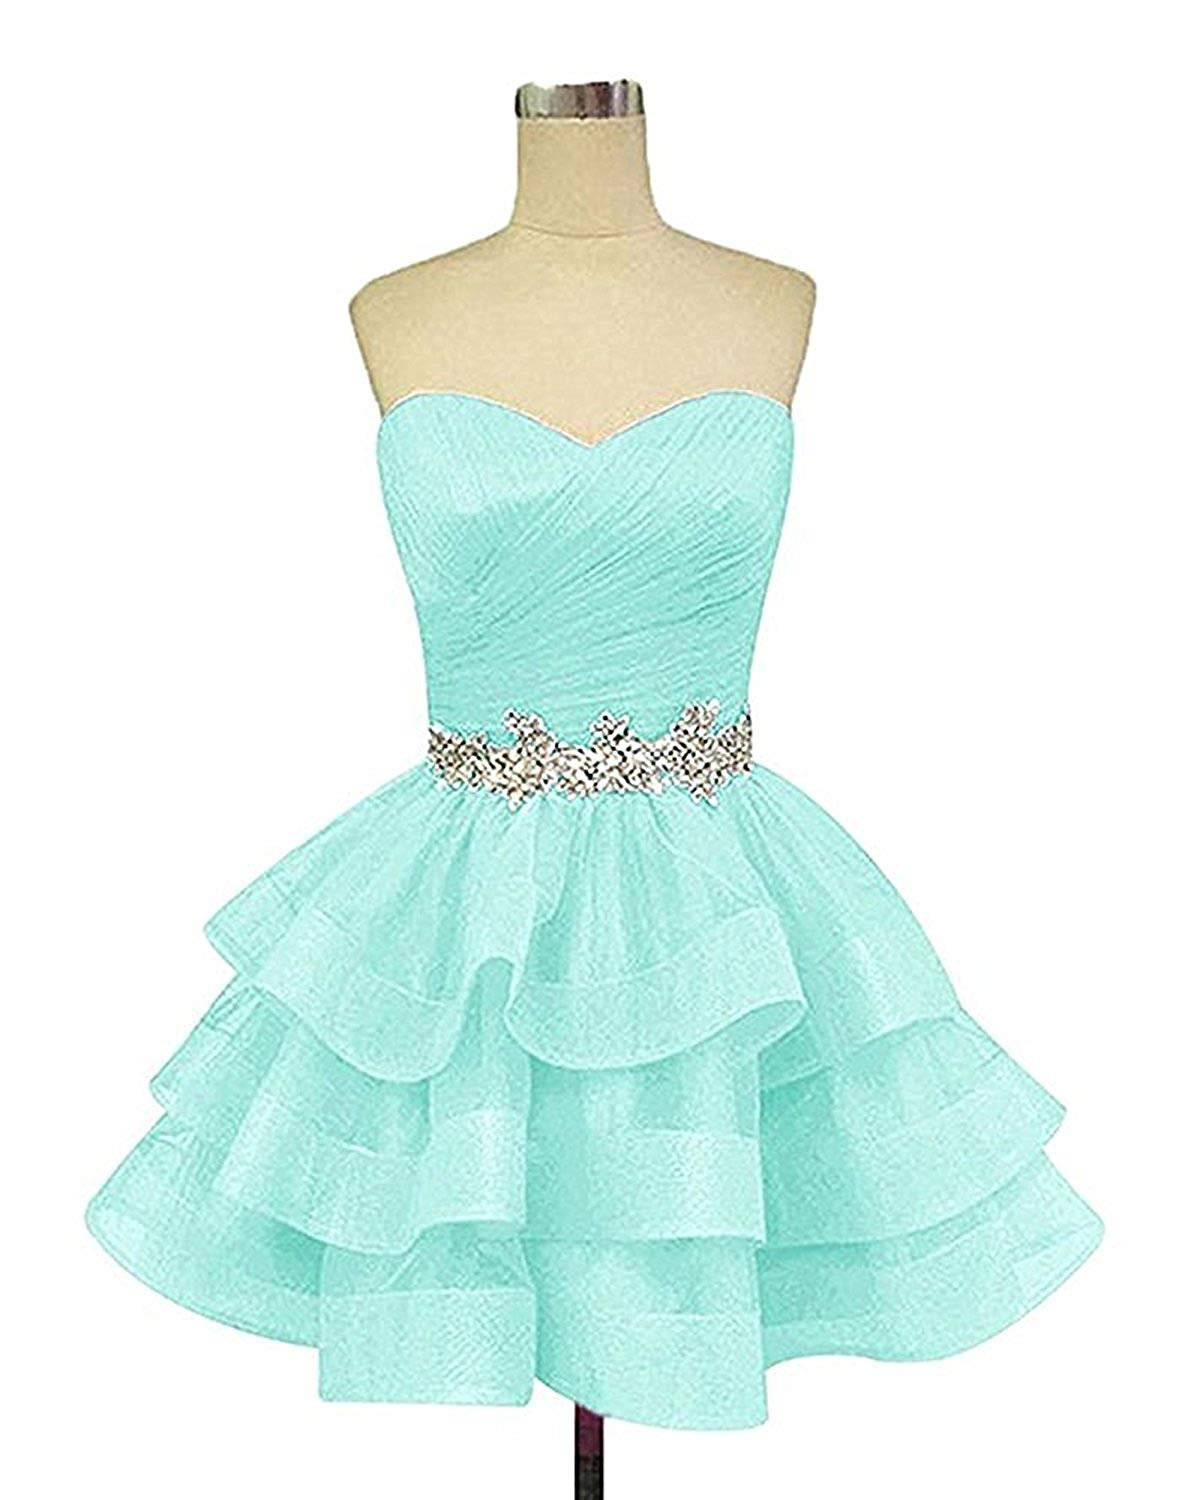 bcf26e36c471 Get Quotations · Ladsen Women's Sweetheart Homecoming Cocktail Dress Puffy  Short Beading Prom Dresses For Juniors L178 Mint Green